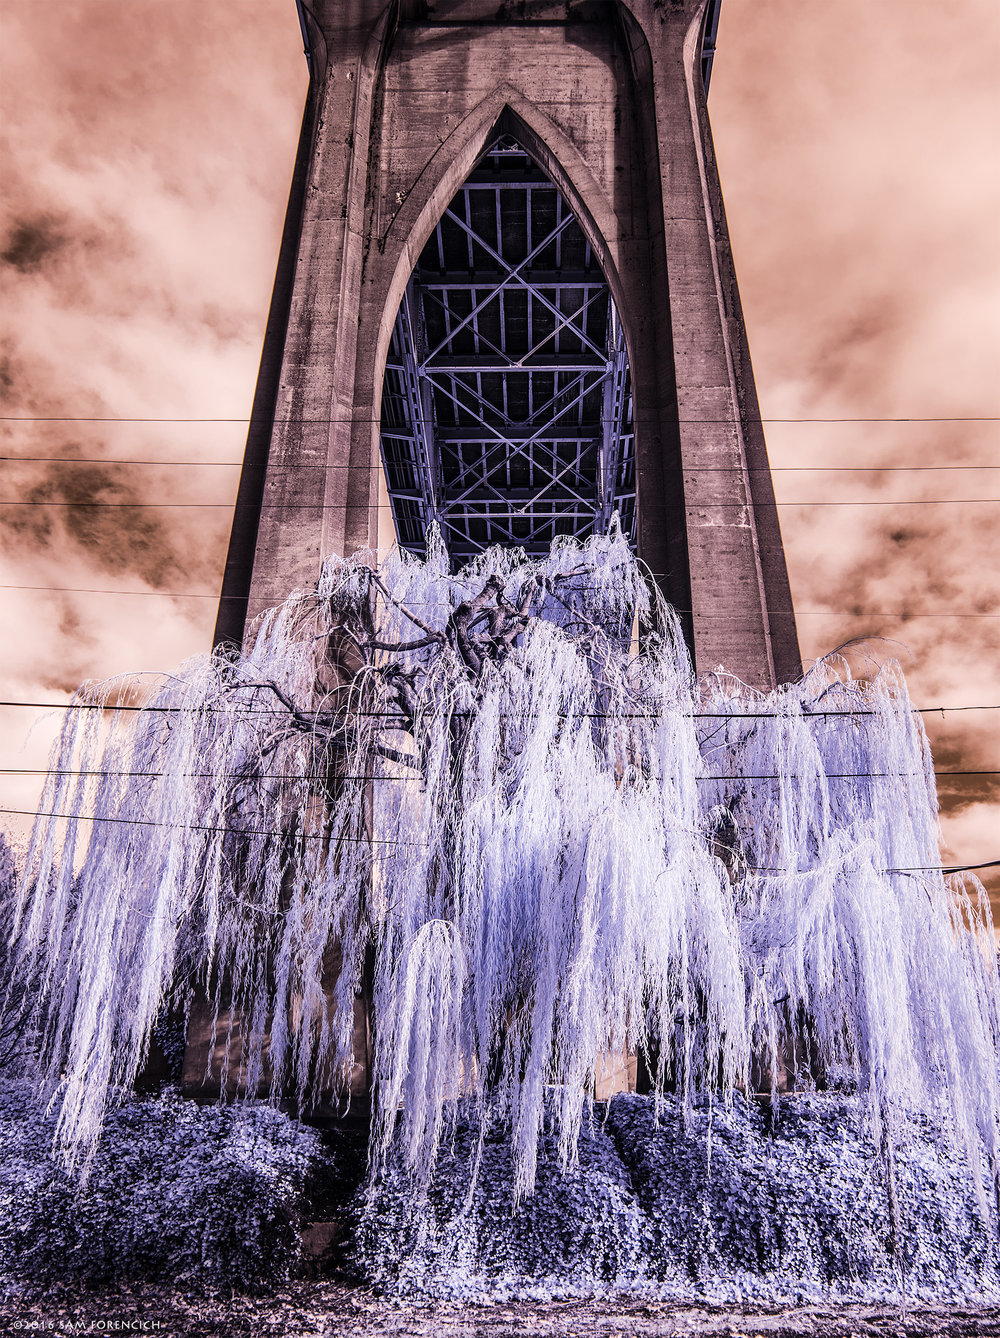 A mature willow tree gives contrast to a Gothic arch supporting the St. Johns Bridge in Portland, Oregon. Completed in 1931, the St. Johns Bridge is a steel suspension bridge that spans the Willamette River in north Portland. IR converted Nikon D750.  © 2016 Sam Forencich